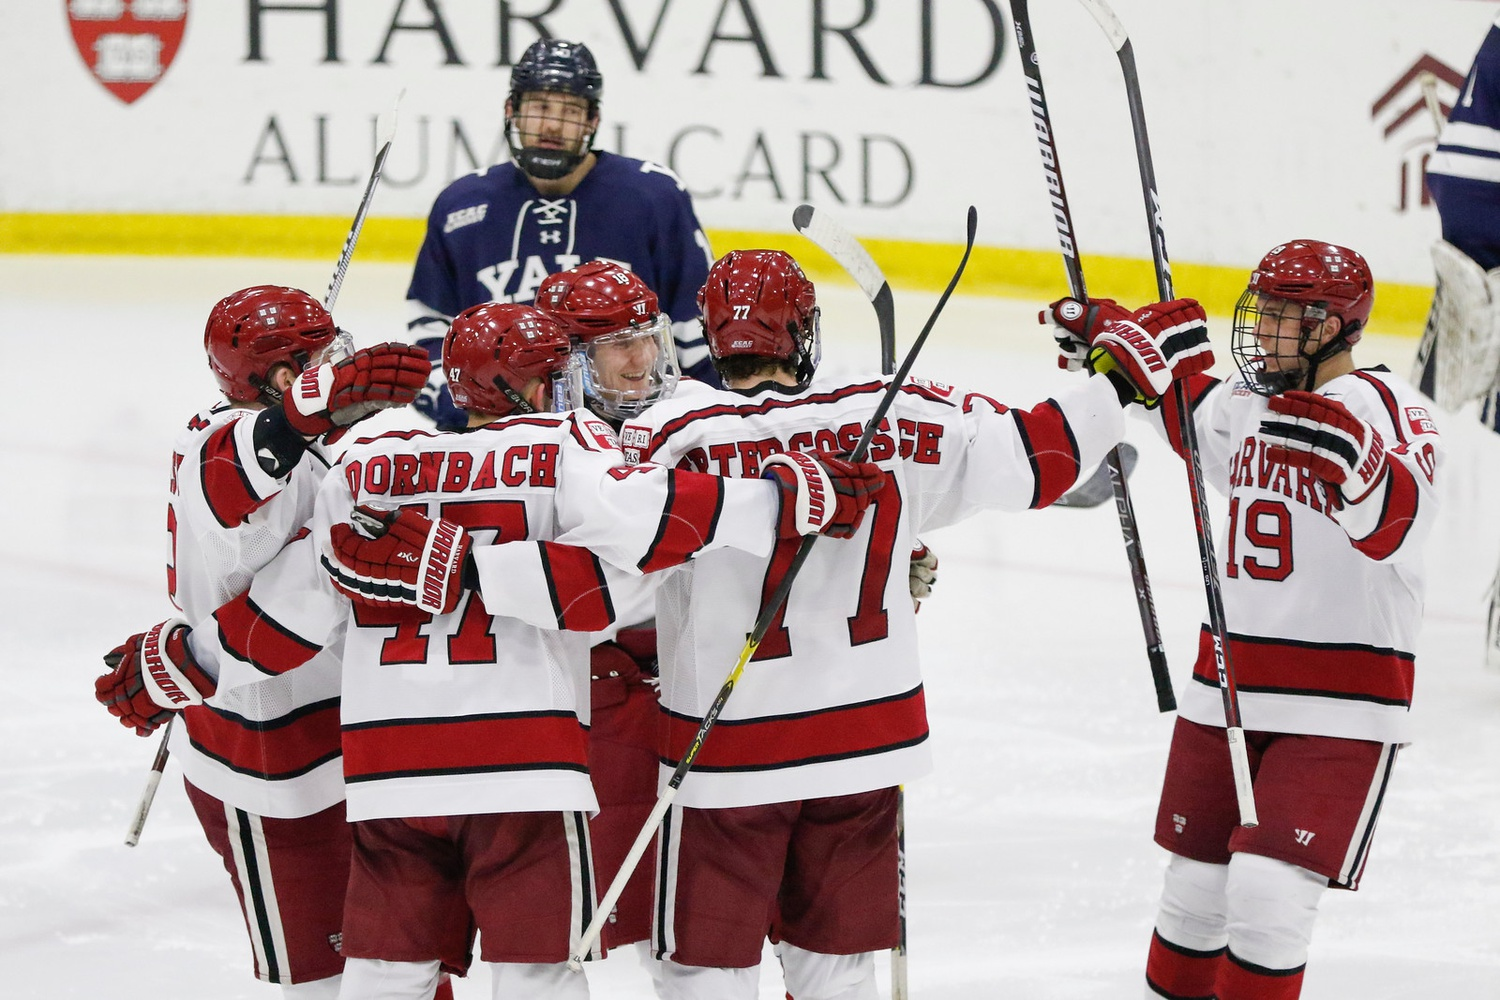 The Crimson powerplay struck again on Saturday night, maintaining its nation-best execution rate.